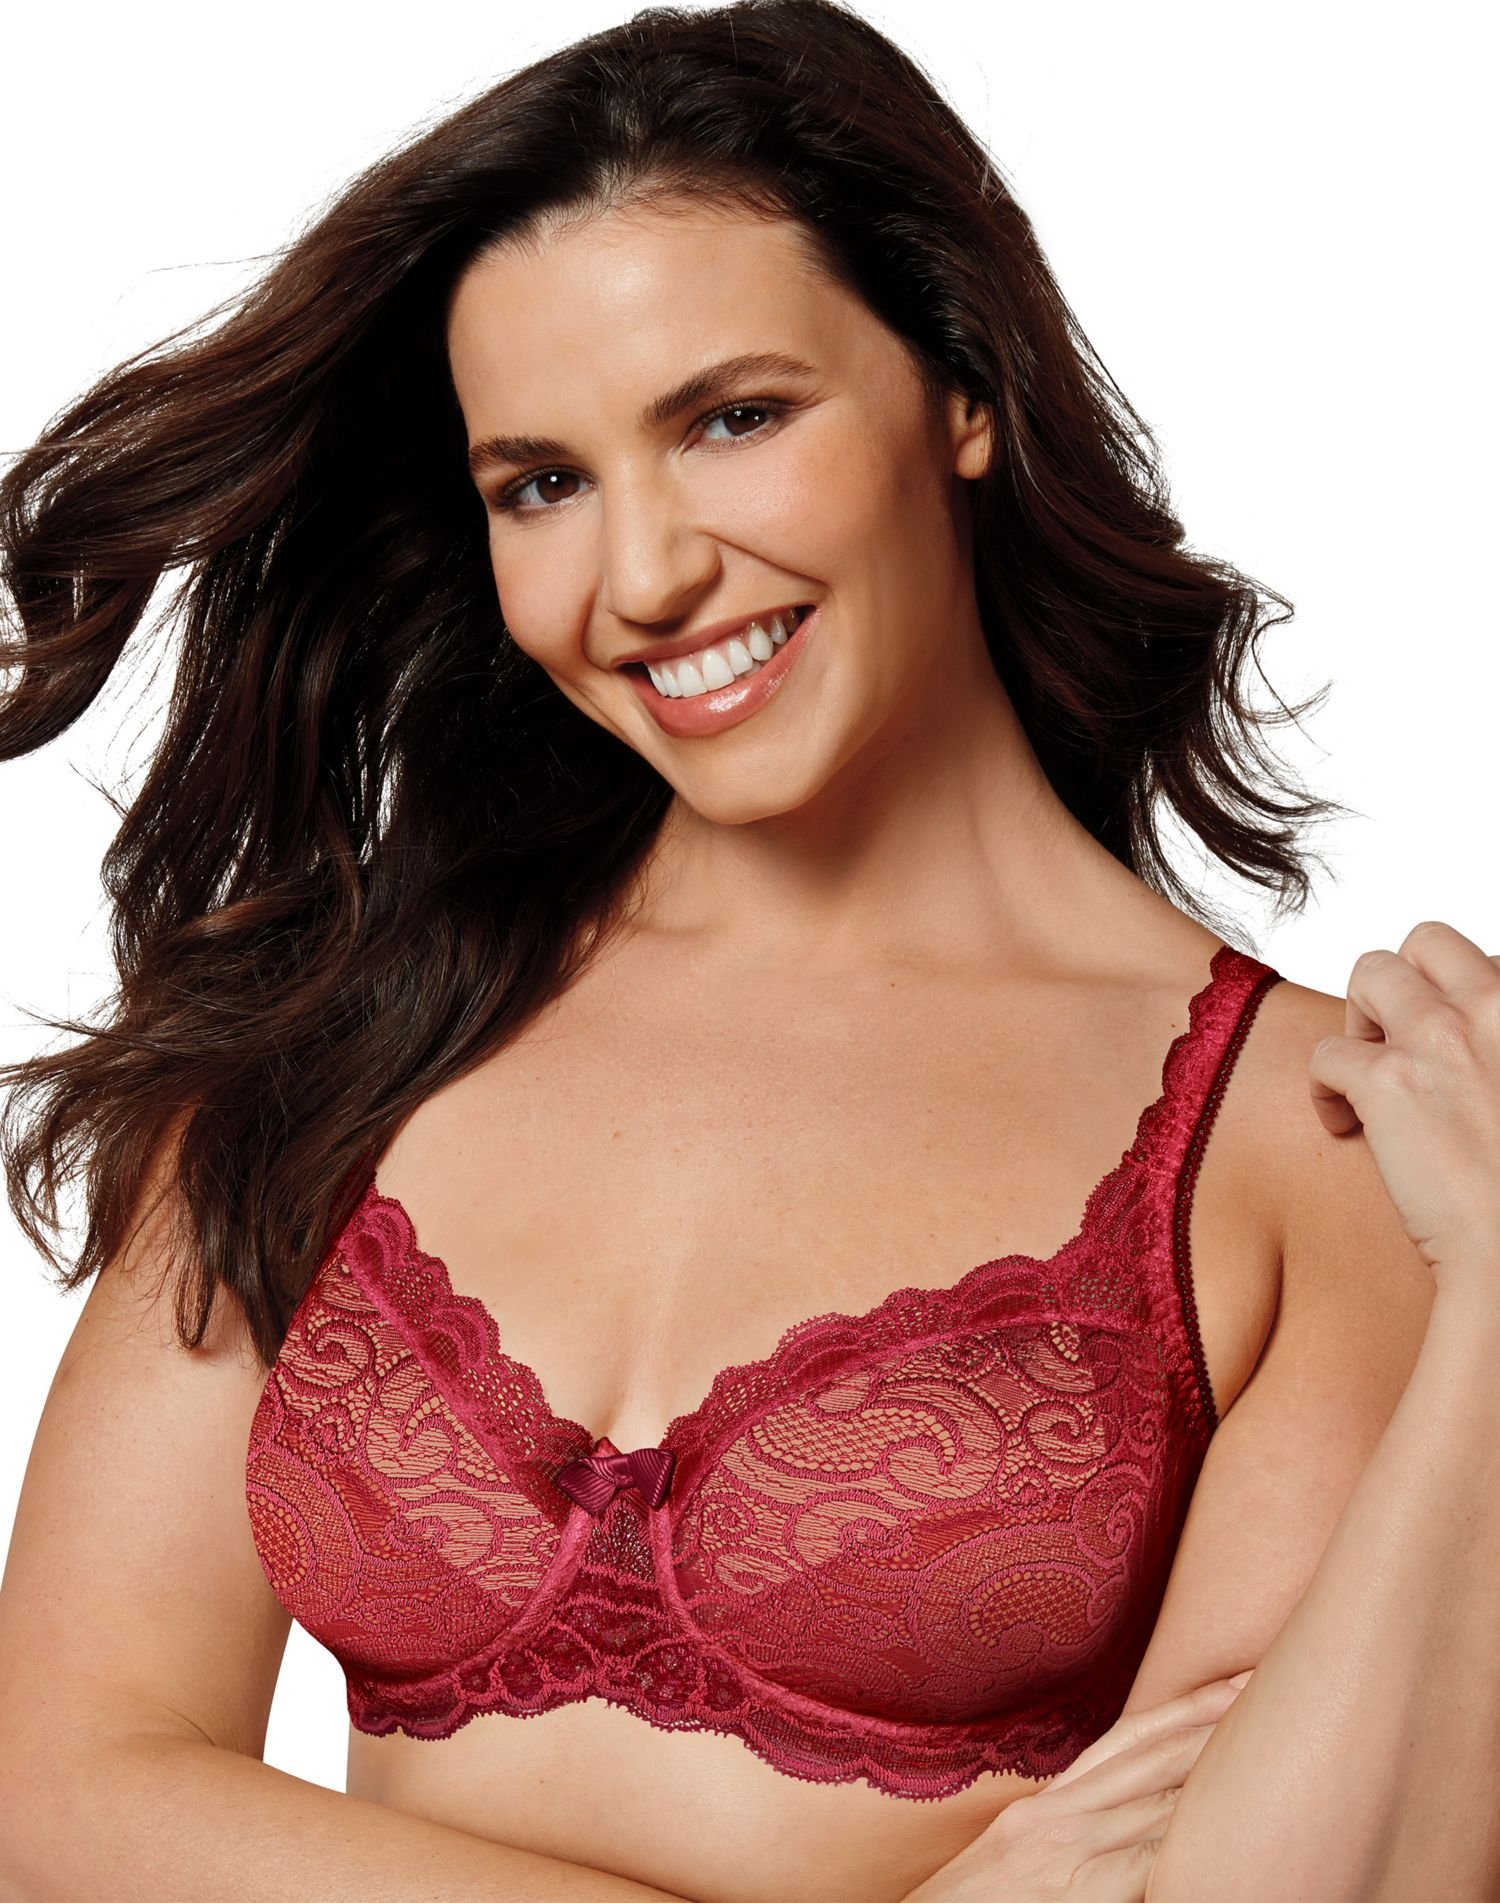 Playtex Women's Love My Curves Beautiful Lace and Lift Underwire, Sparkling Red, 40DD